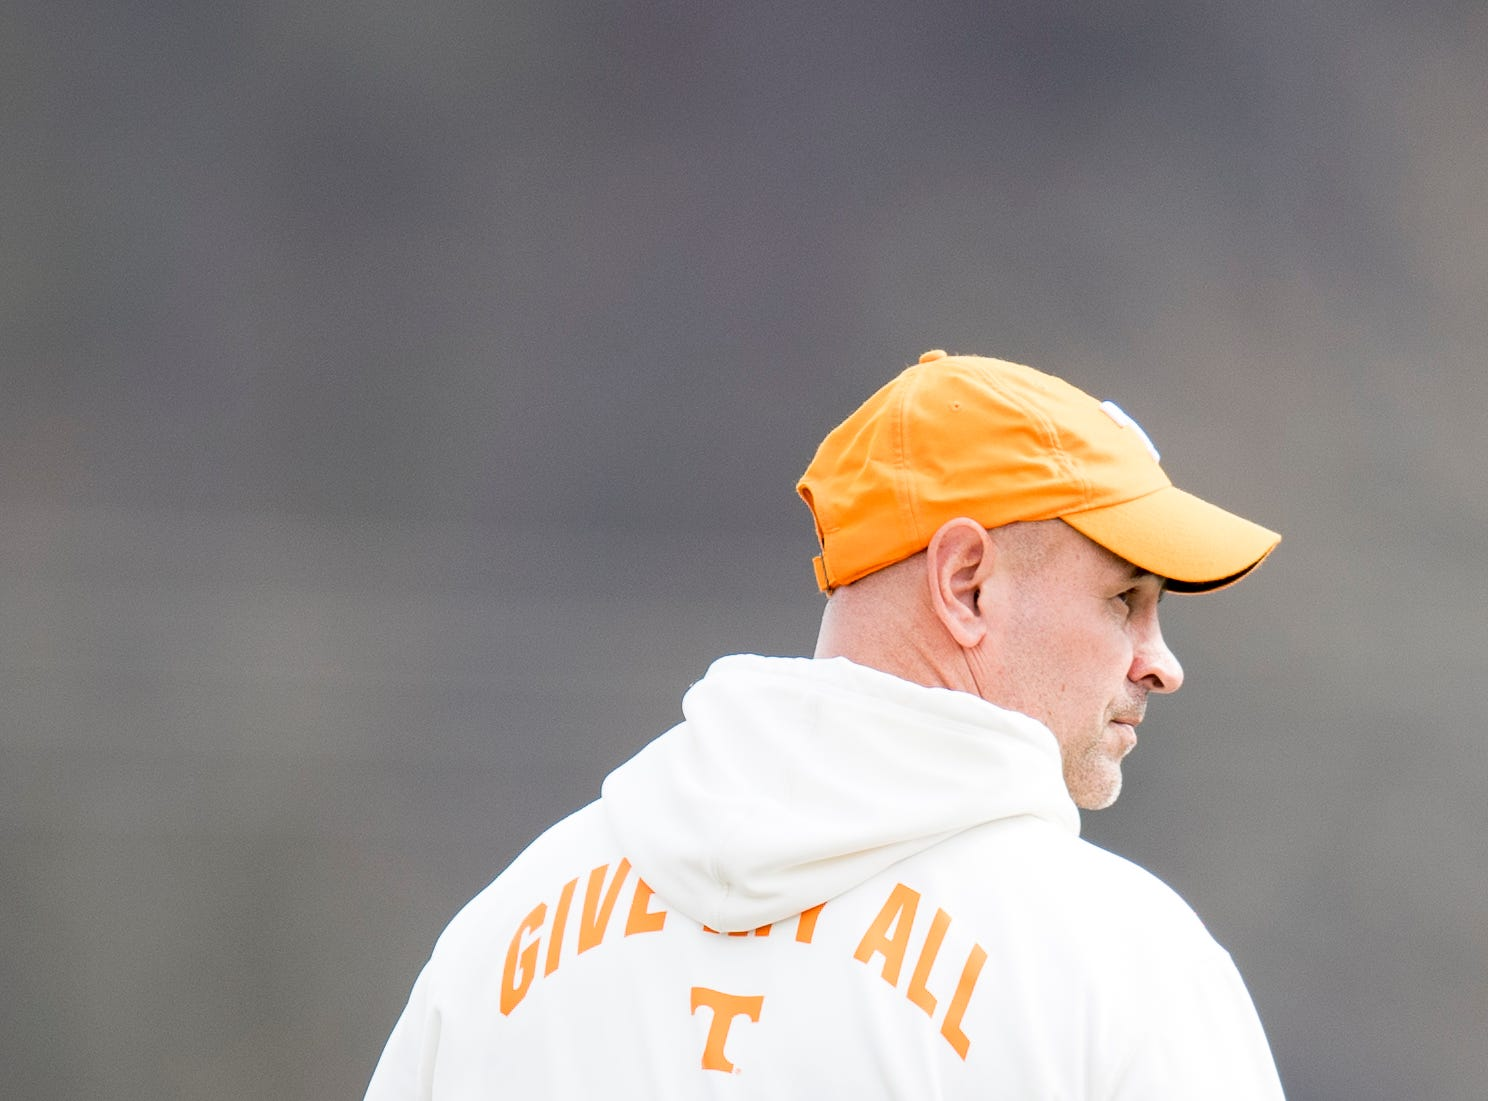 Tennessee Head Coach Jeremy Pruitt walks on the field during Tennessee springJfootball practice at  Haslam Field in Knoxville, Tennessee on Wednesday, March 13, 2019.